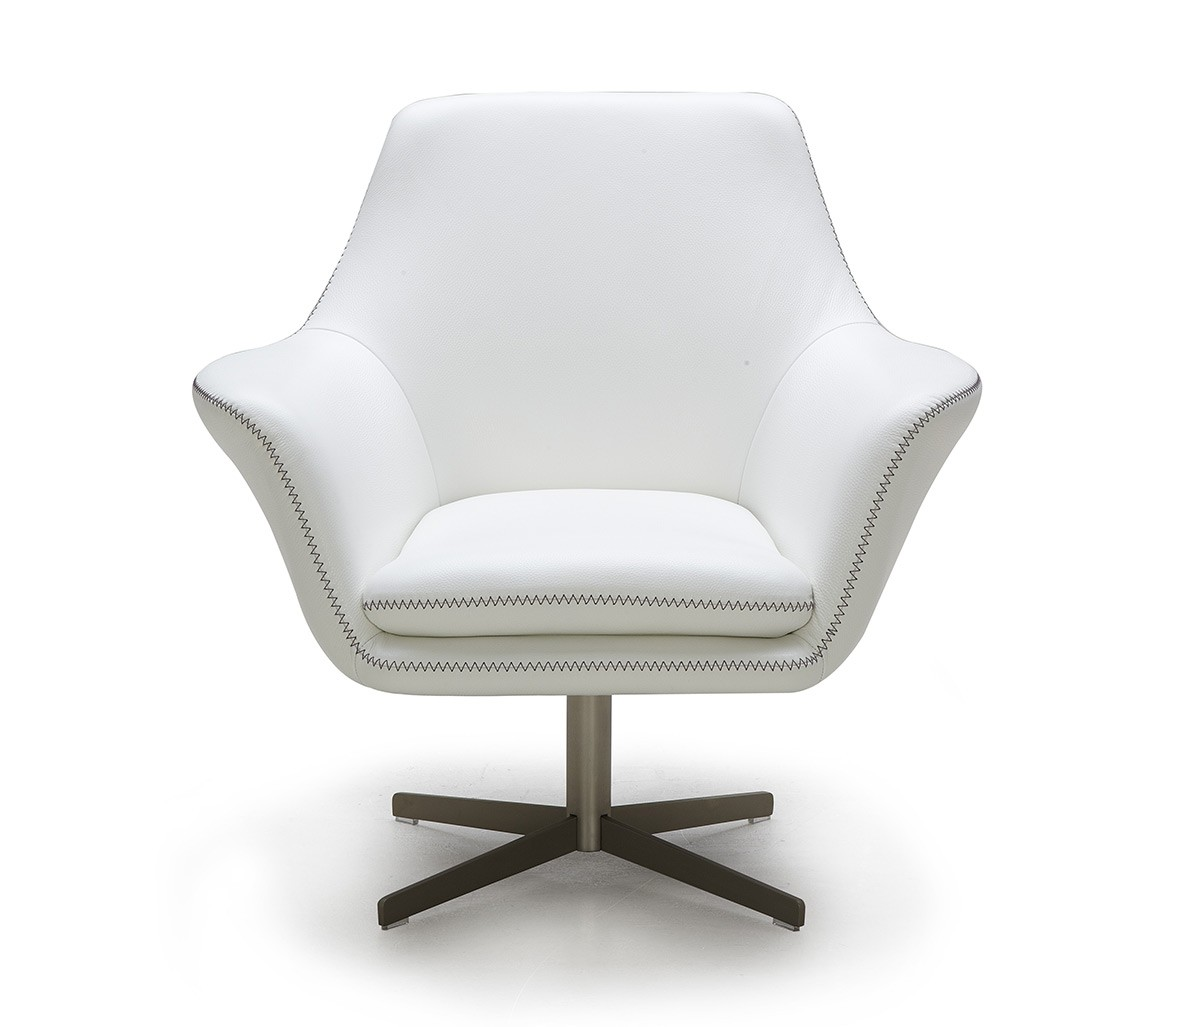 Lounge Chaises And Daybeds Stylish Accessories Modern White Leather Swivel Chair